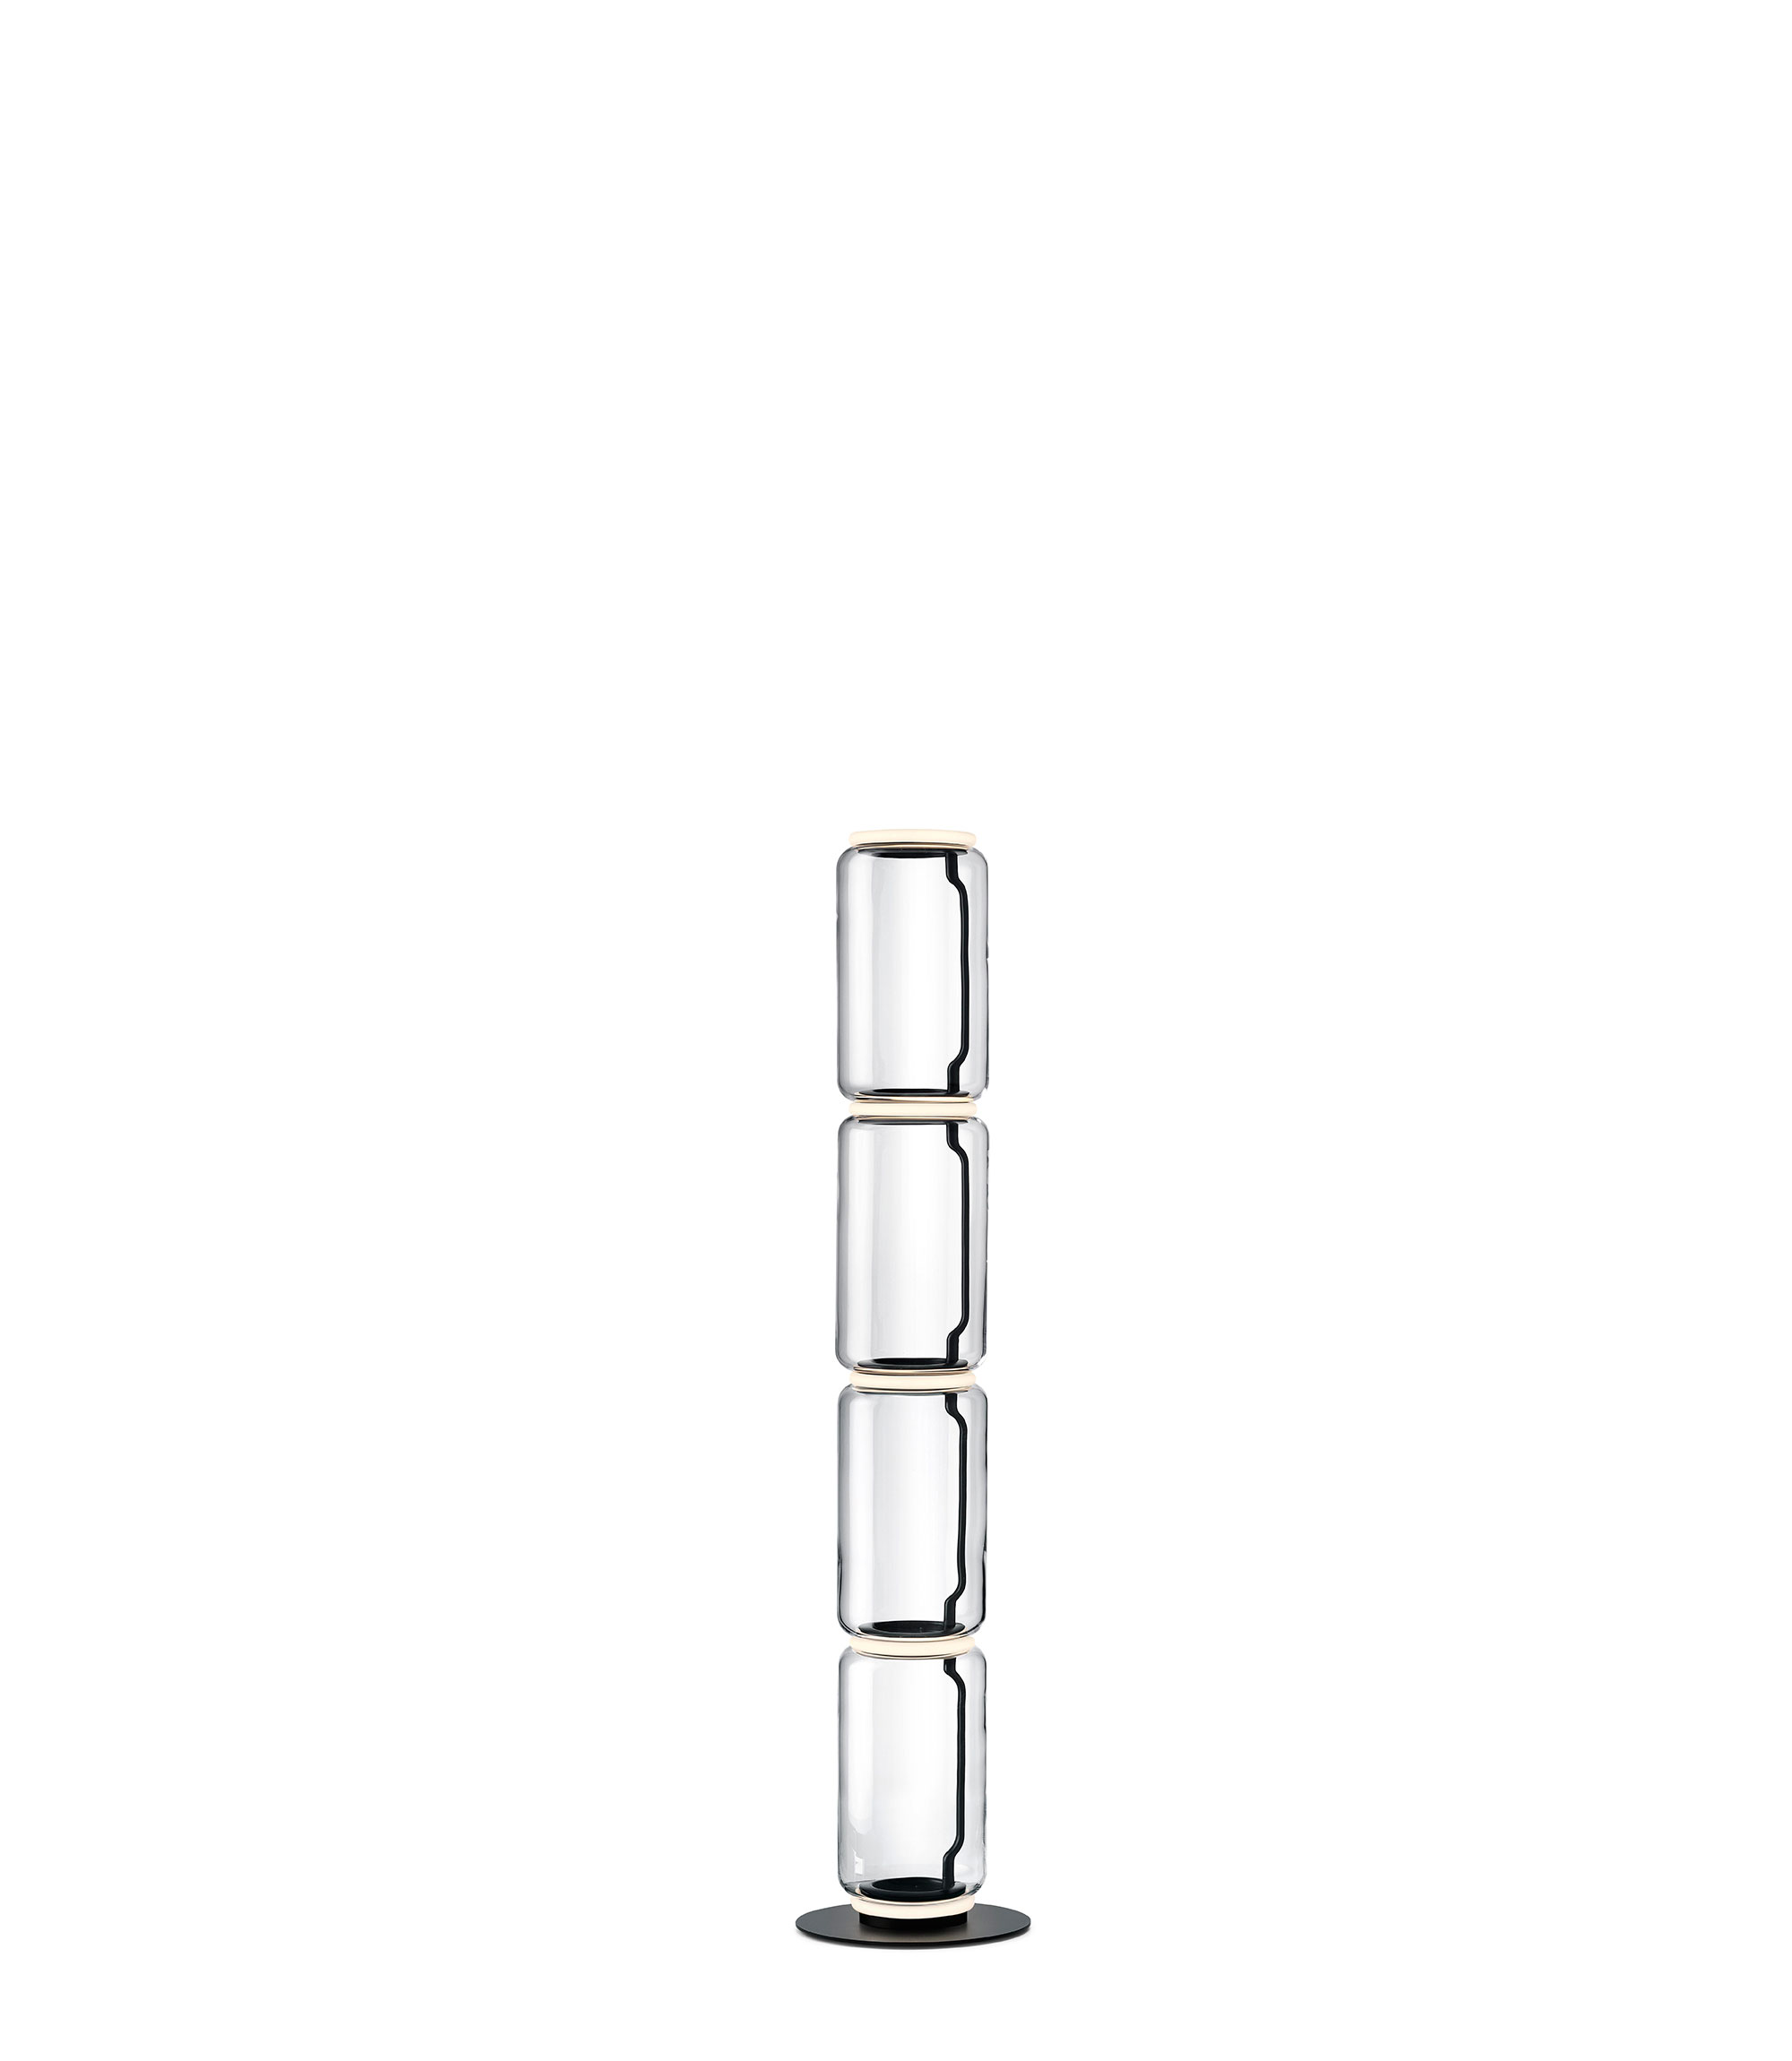 Noctambule floor 4 low cylinders small base grcic flos F0291000 product still life big